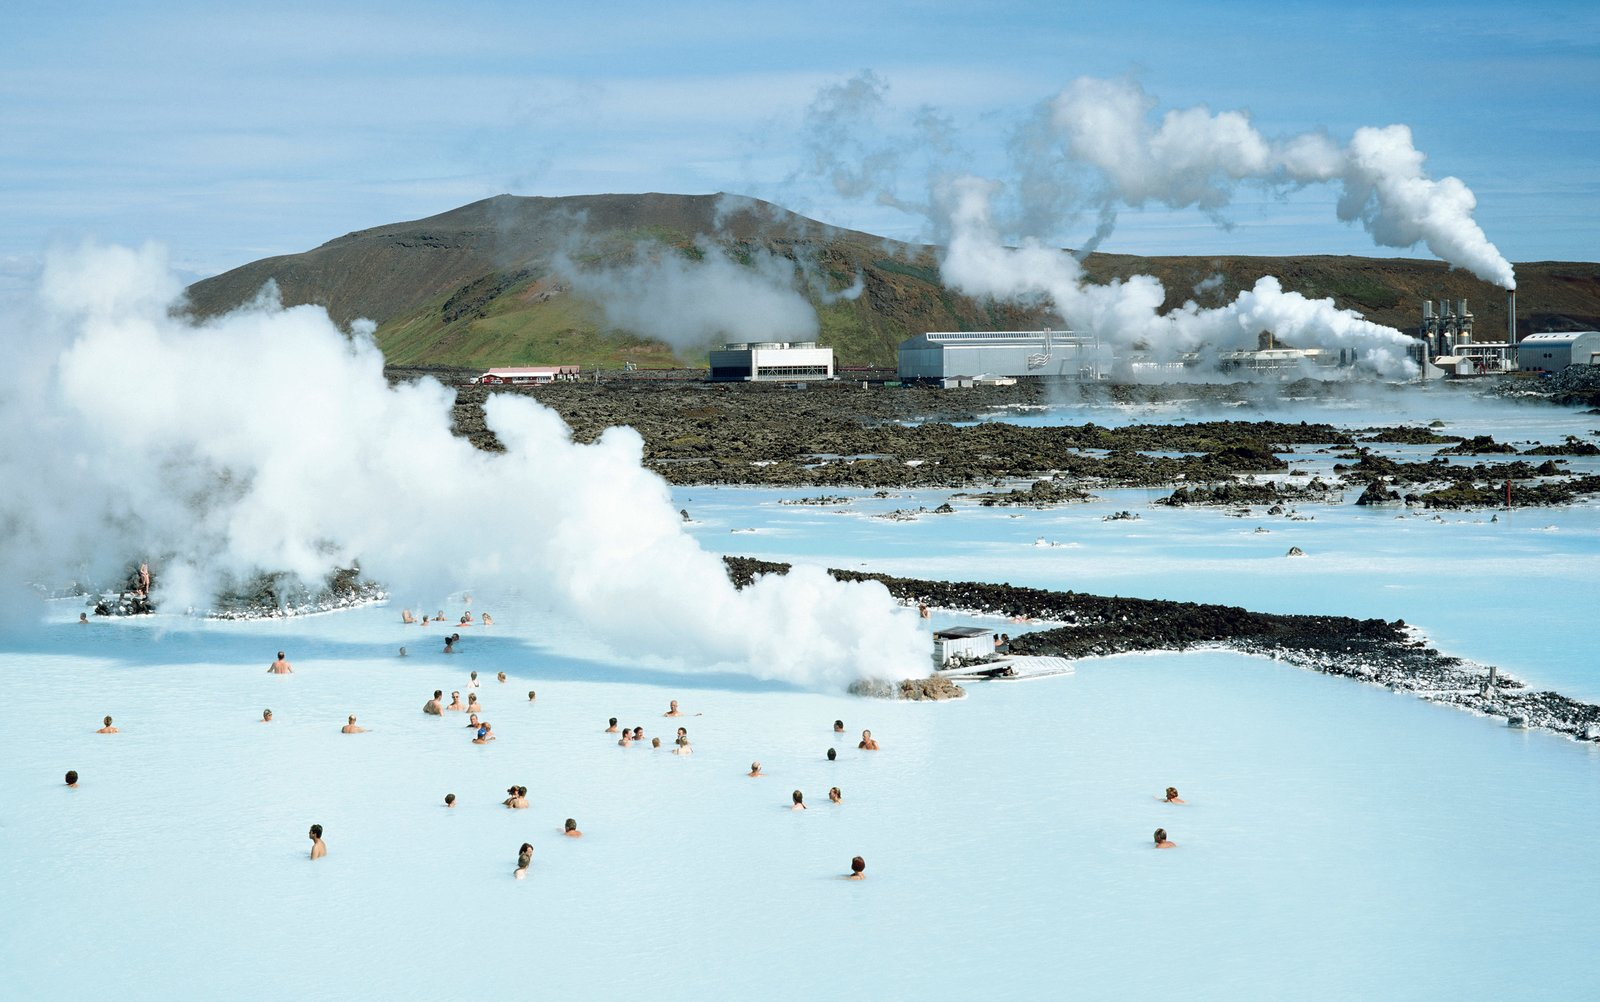 Since the 1990s, the Blue Lagoon has welcomed visitors to soak in water heated by the geothermal plant situated just next door. A new hotel and revamped facilities are coming in 2017.  Seaside Escaping from Dive Into the Next Phase of Iceland's Blue Lagoon